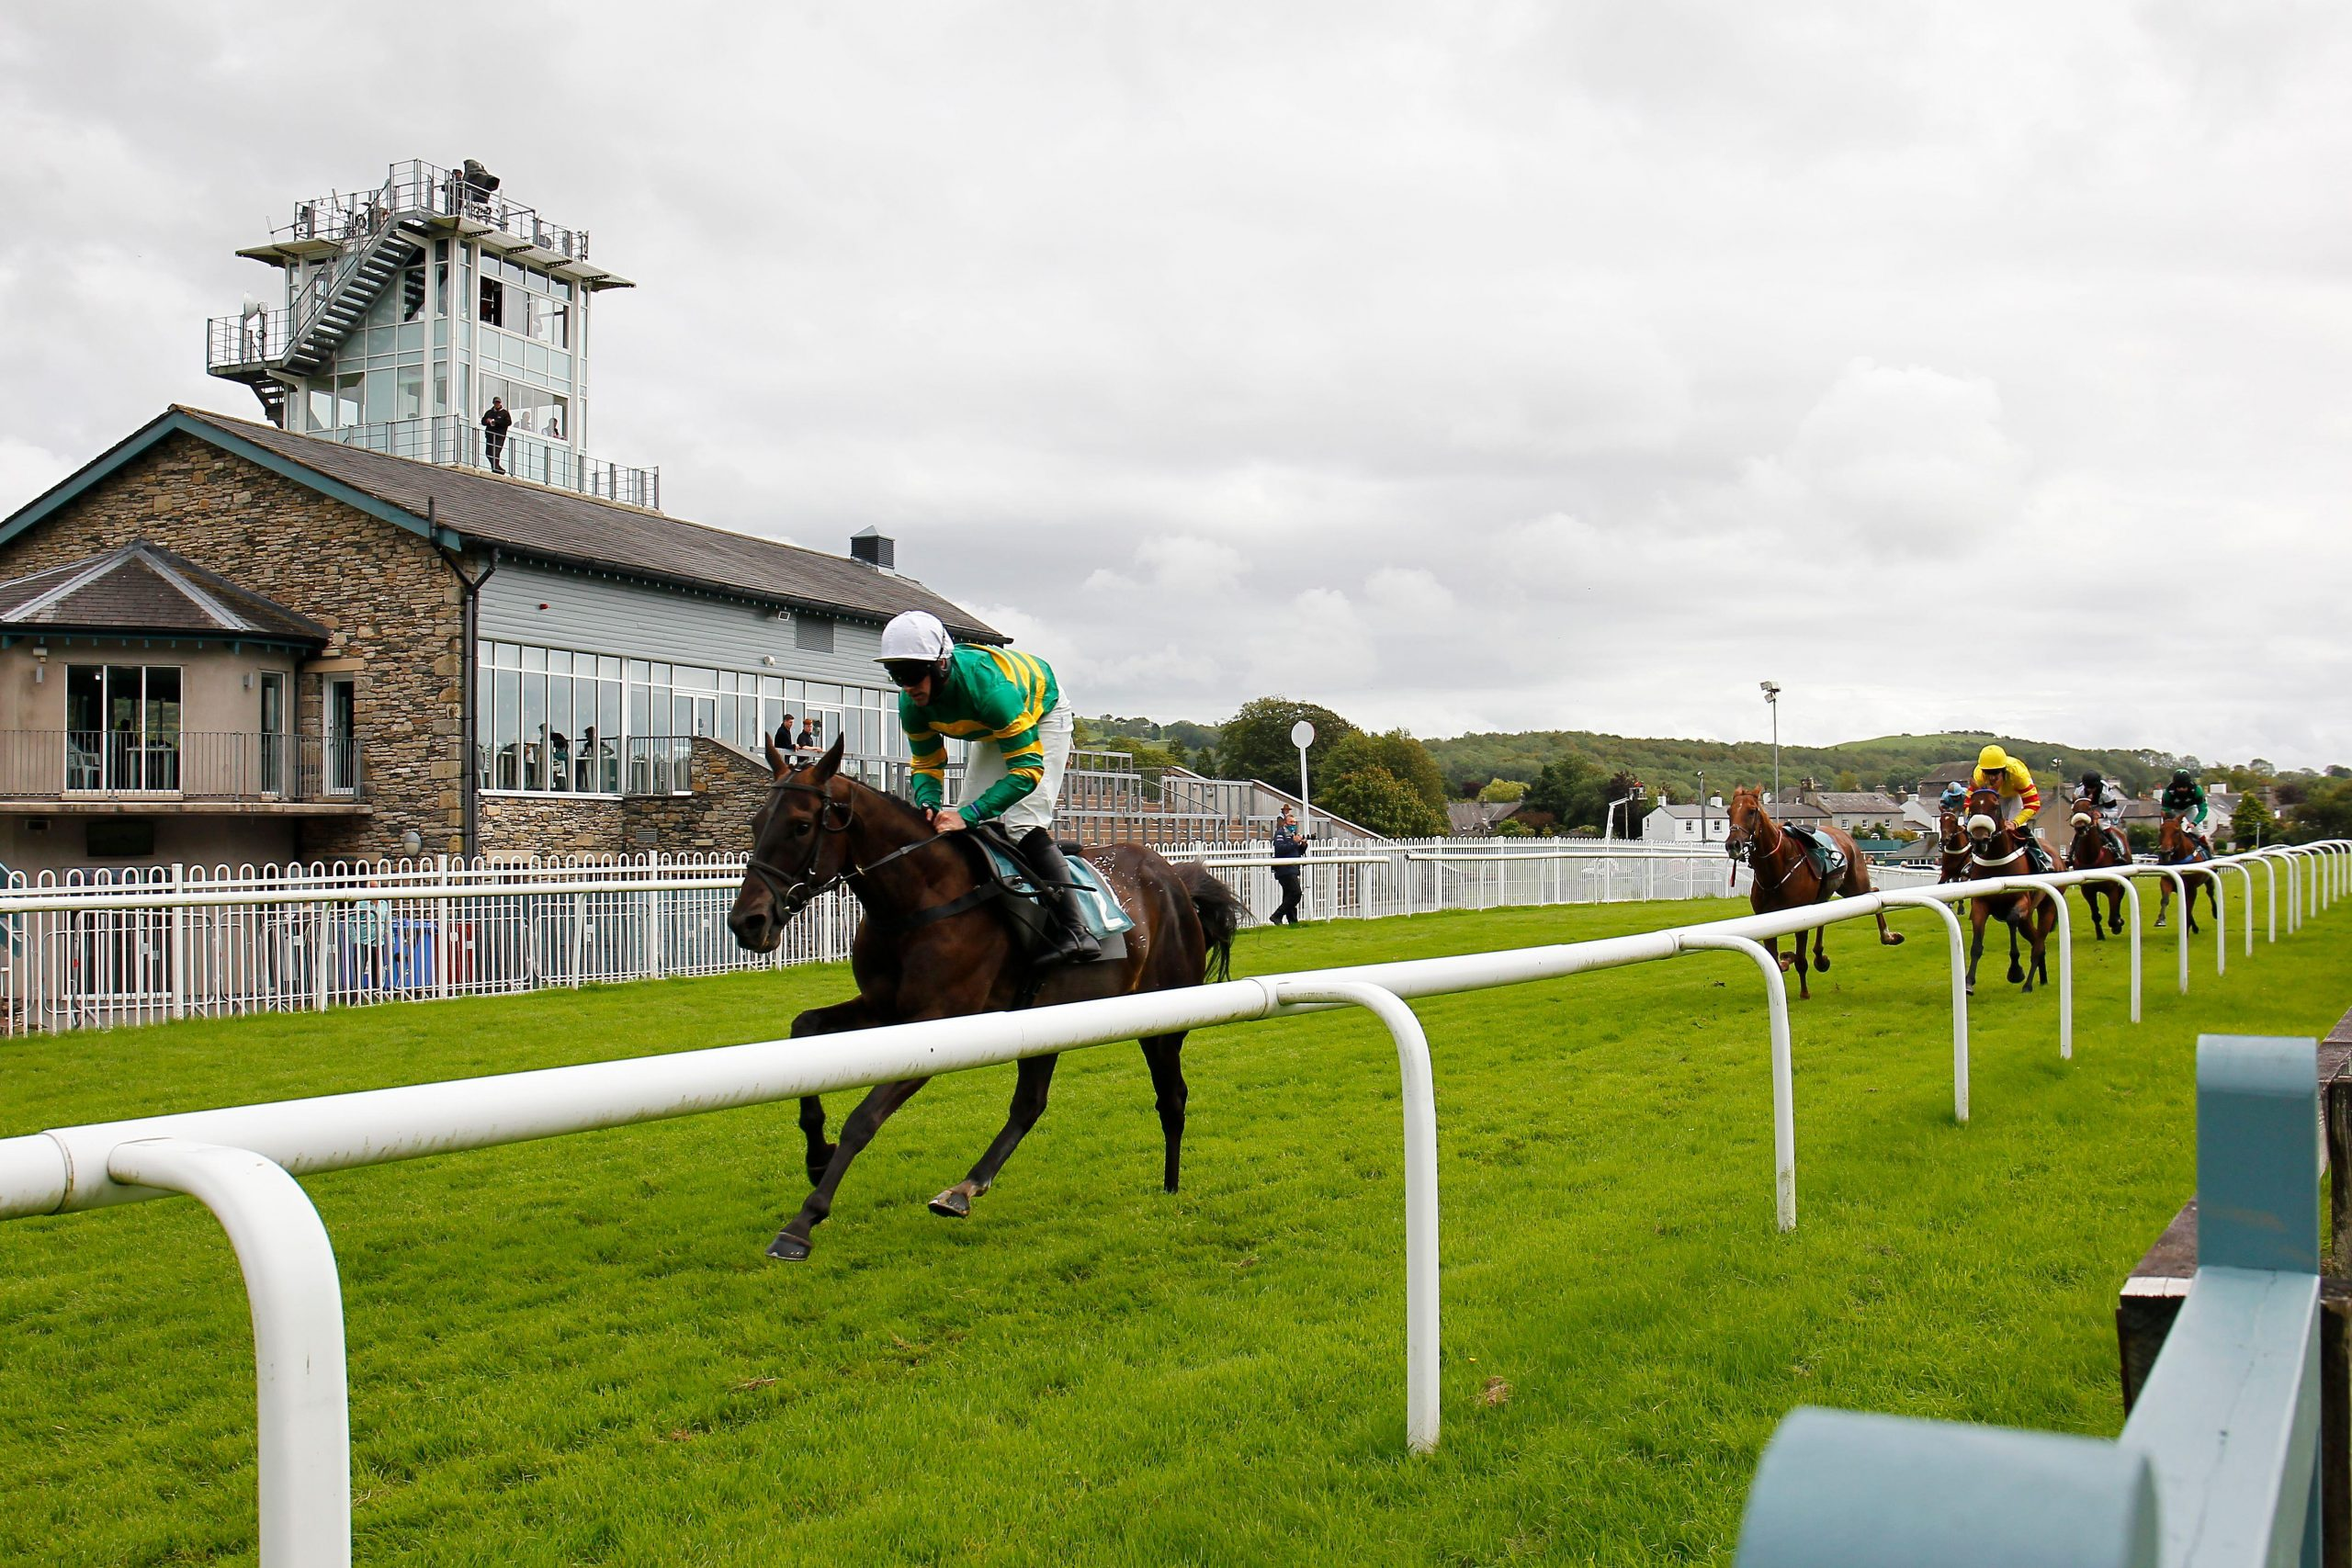 Demon D'Aunou and jockey Richie McLernon win the Unsworth Brewery Cartmel Novices' Handicap Chase at Cartmel Racecourse.